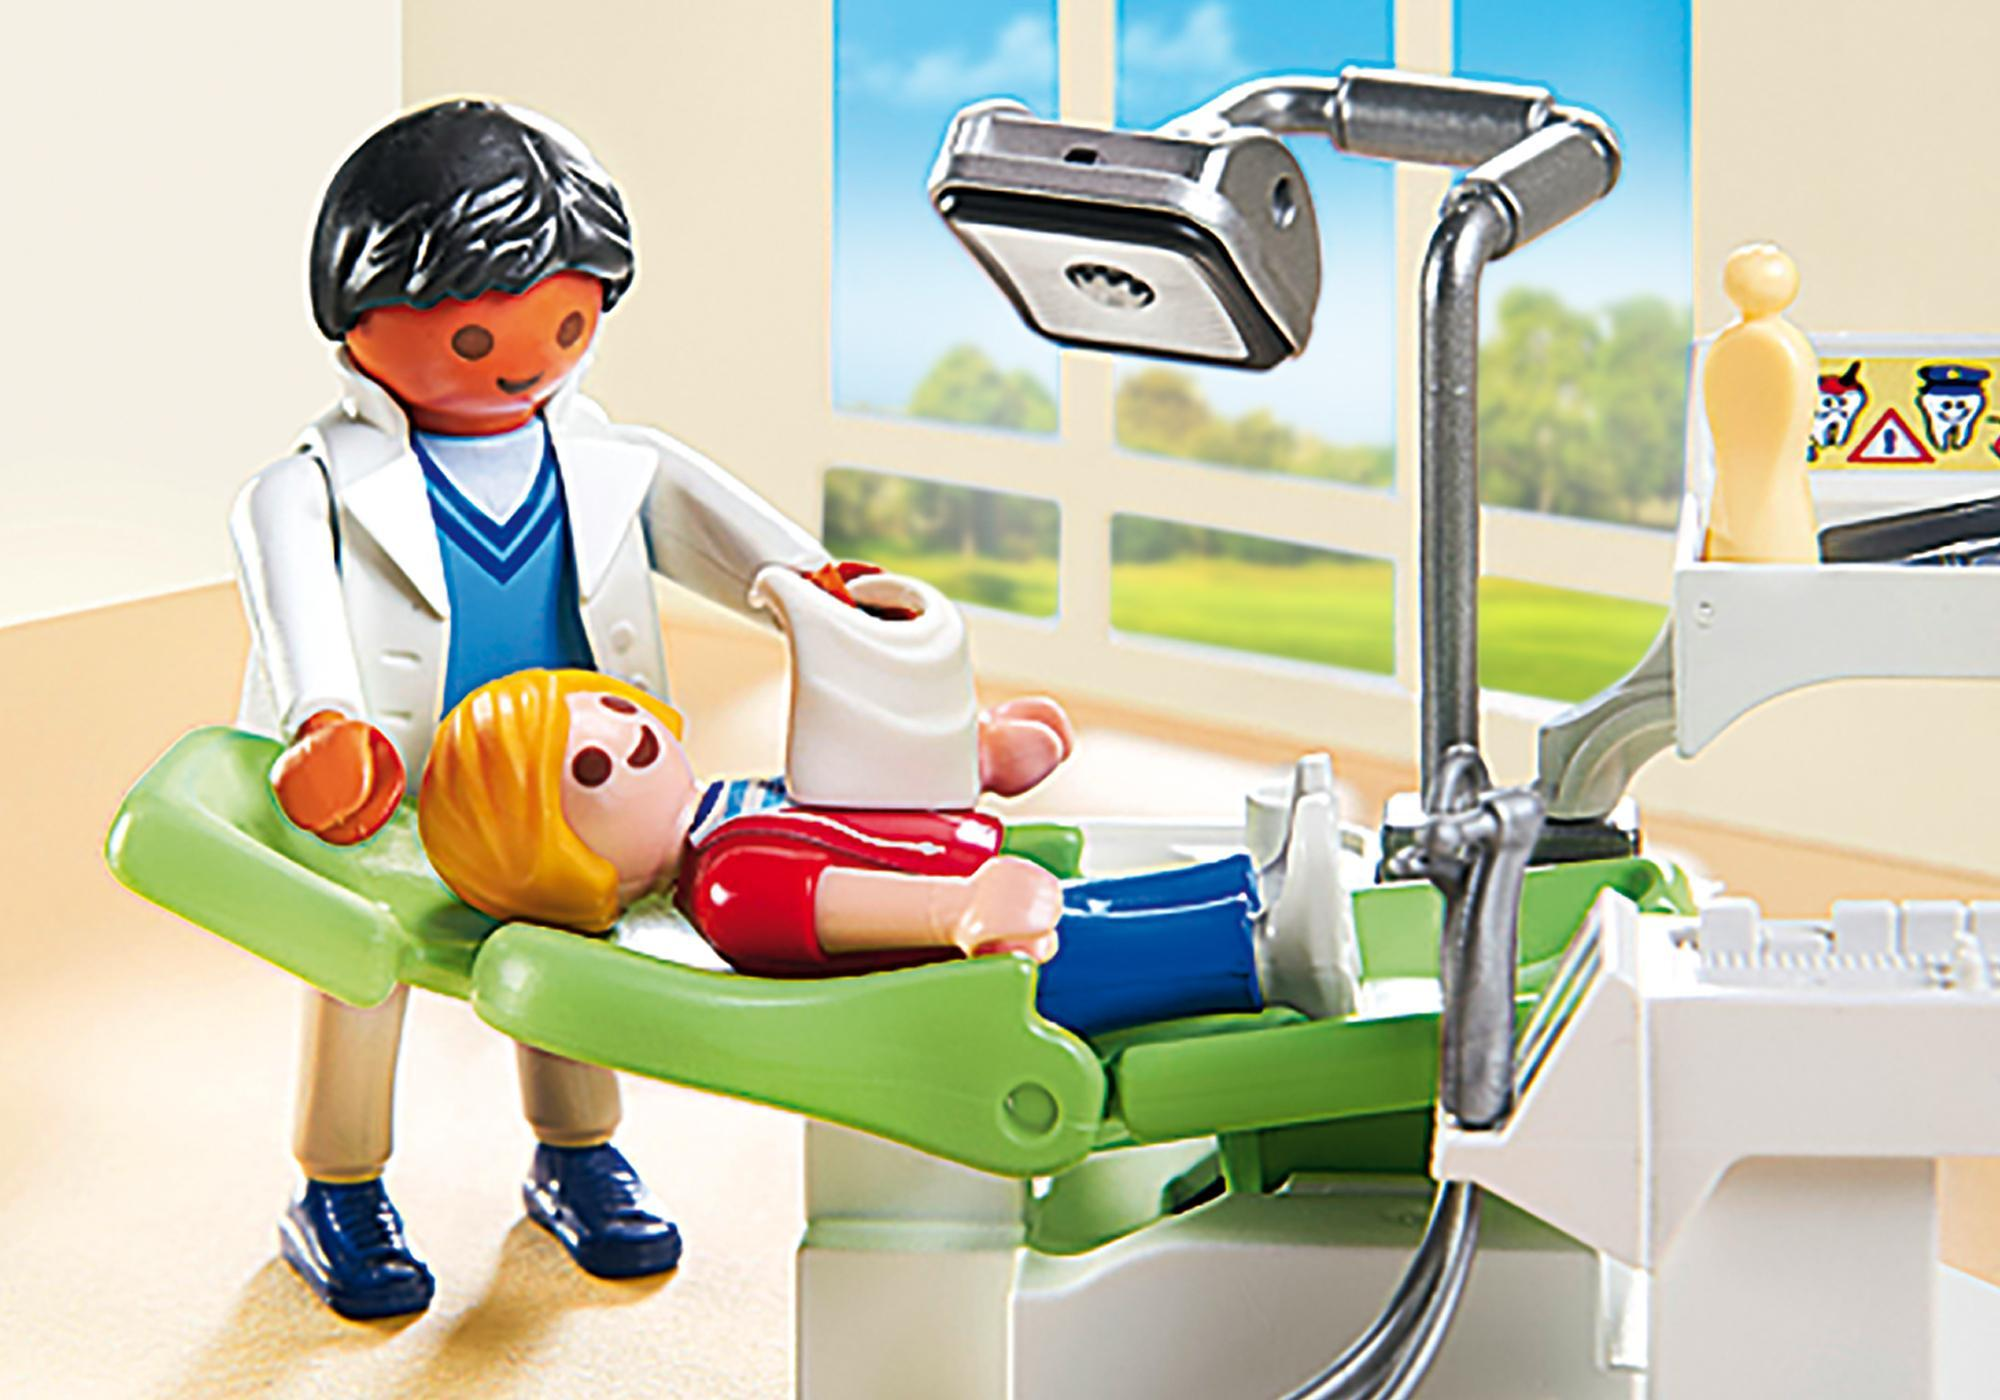 http://media.playmobil.com/i/playmobil/6662_product_extra1/Dentysta